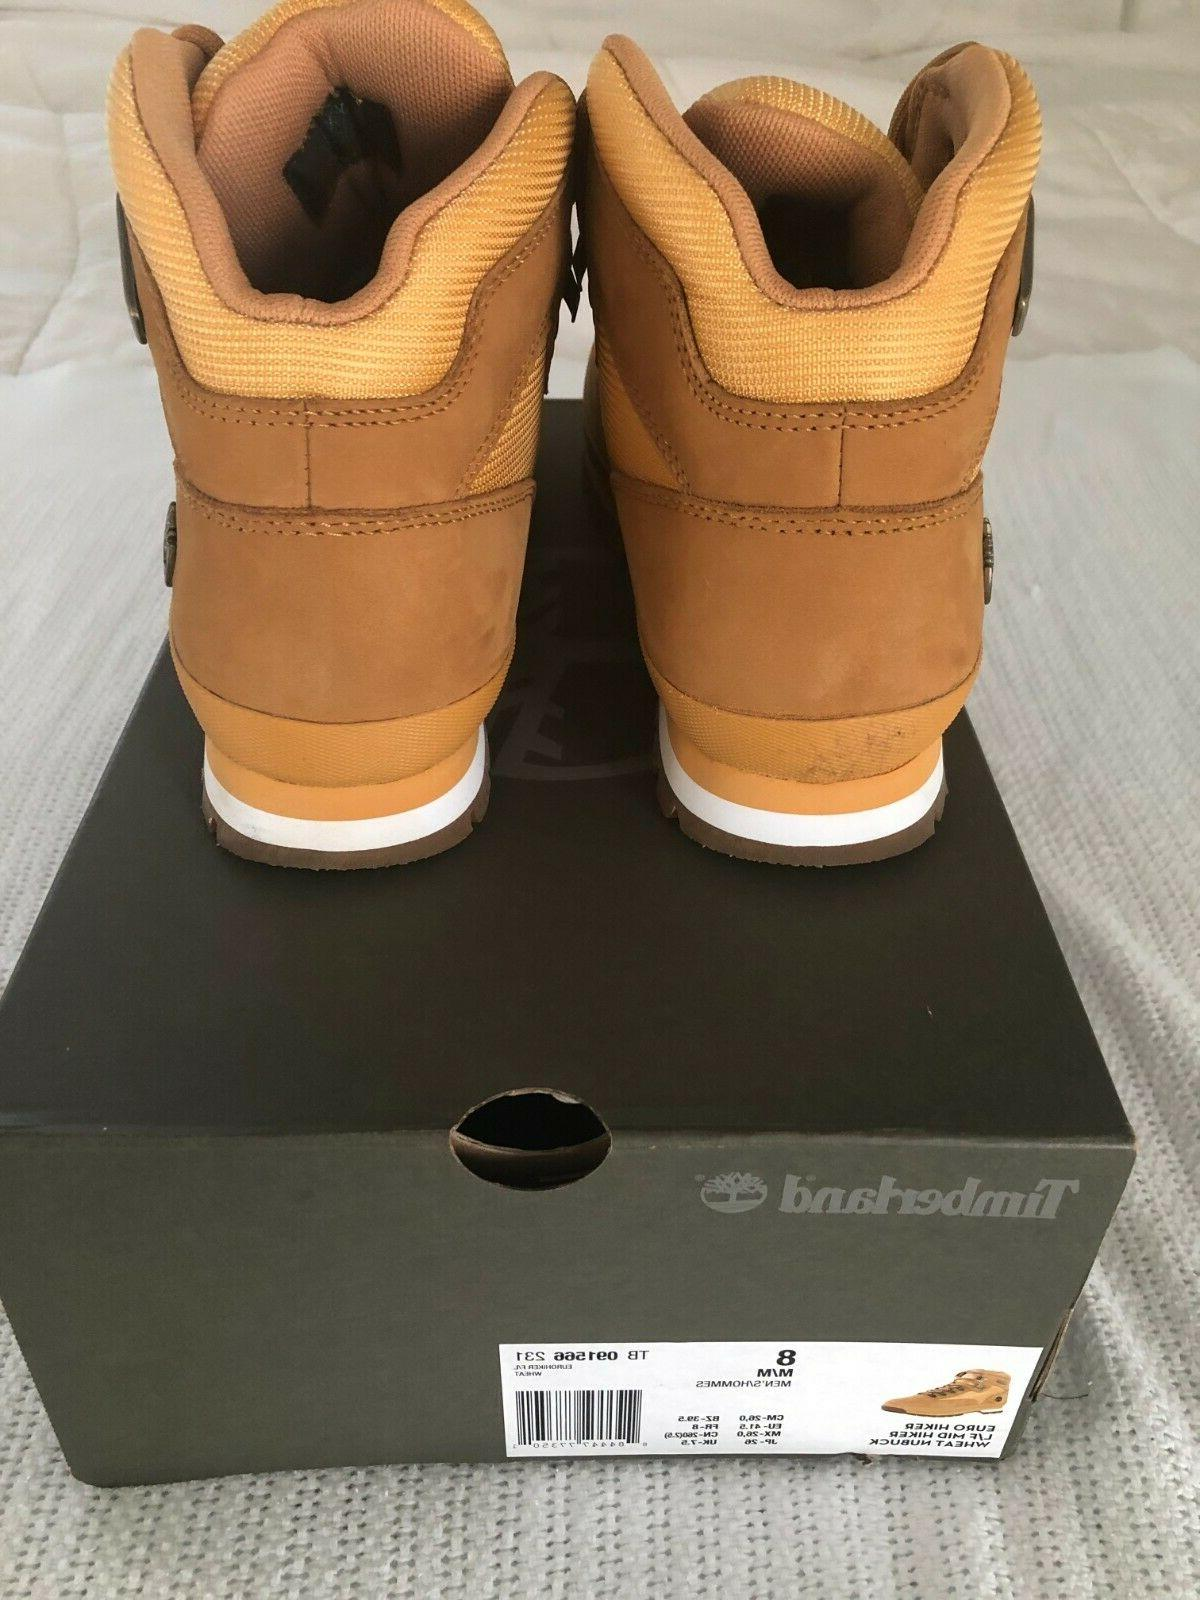 Timberland MEN'S EURO BOOTS Size 8